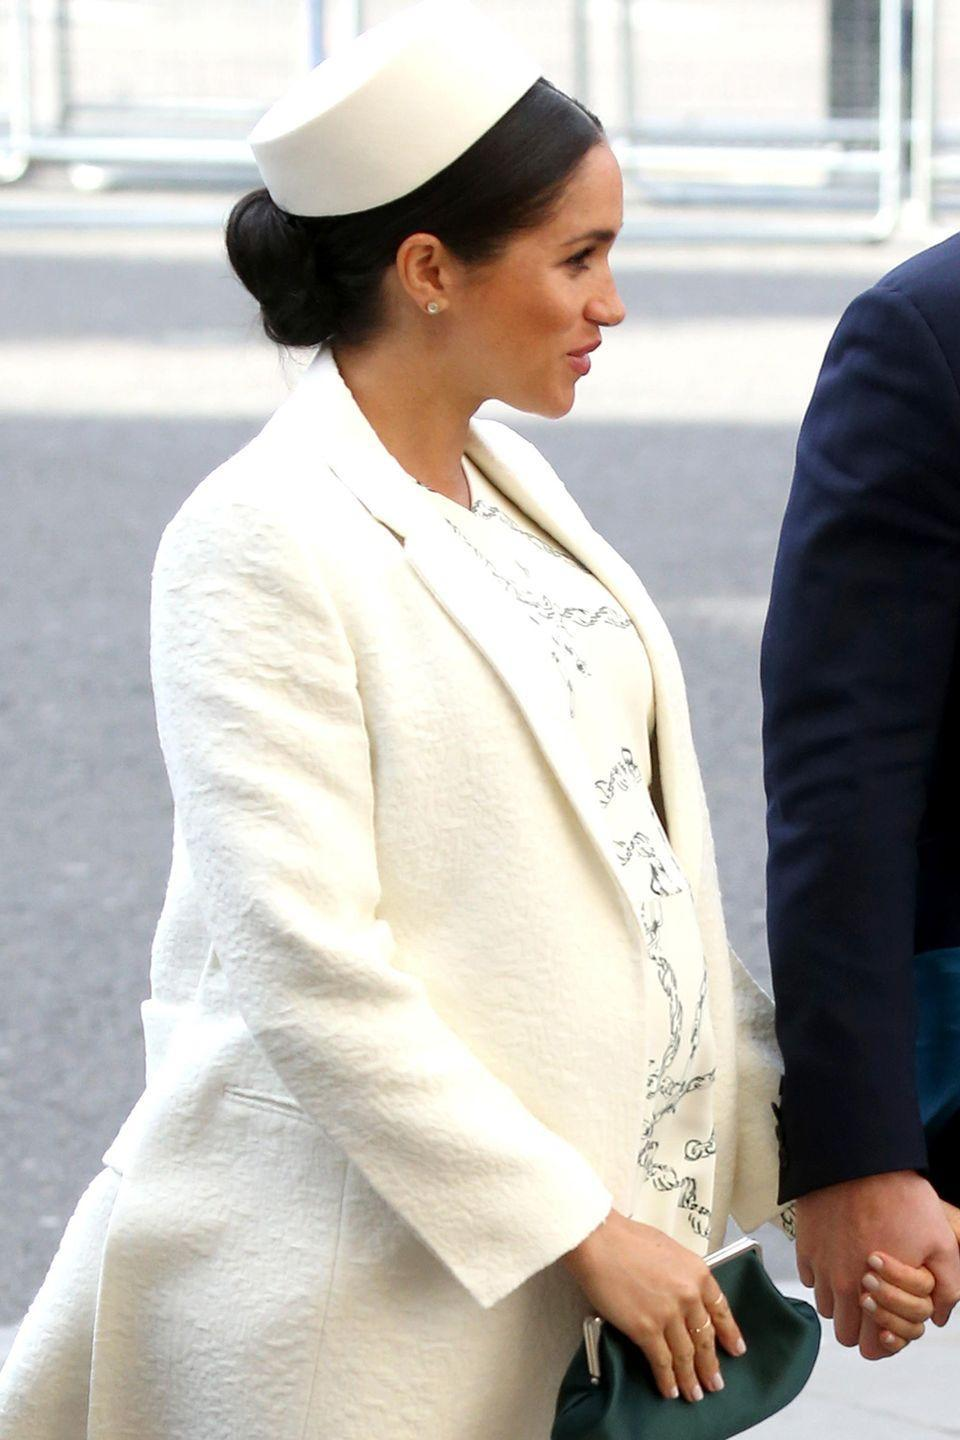 <p>On her second-to-last appearance before maternity leave (being 8 months pregnant didn't seem to stifle the work ethic in Meghan Markle all that much) the Duchess of Sussex wore a white dress that skimmed over her nearly-fully-sized baby.</p><p>Meghan was looking just about as pregnant as a woman can get, at nearly full term, so goodness knows how she's feeling now, more than a month later...</p>